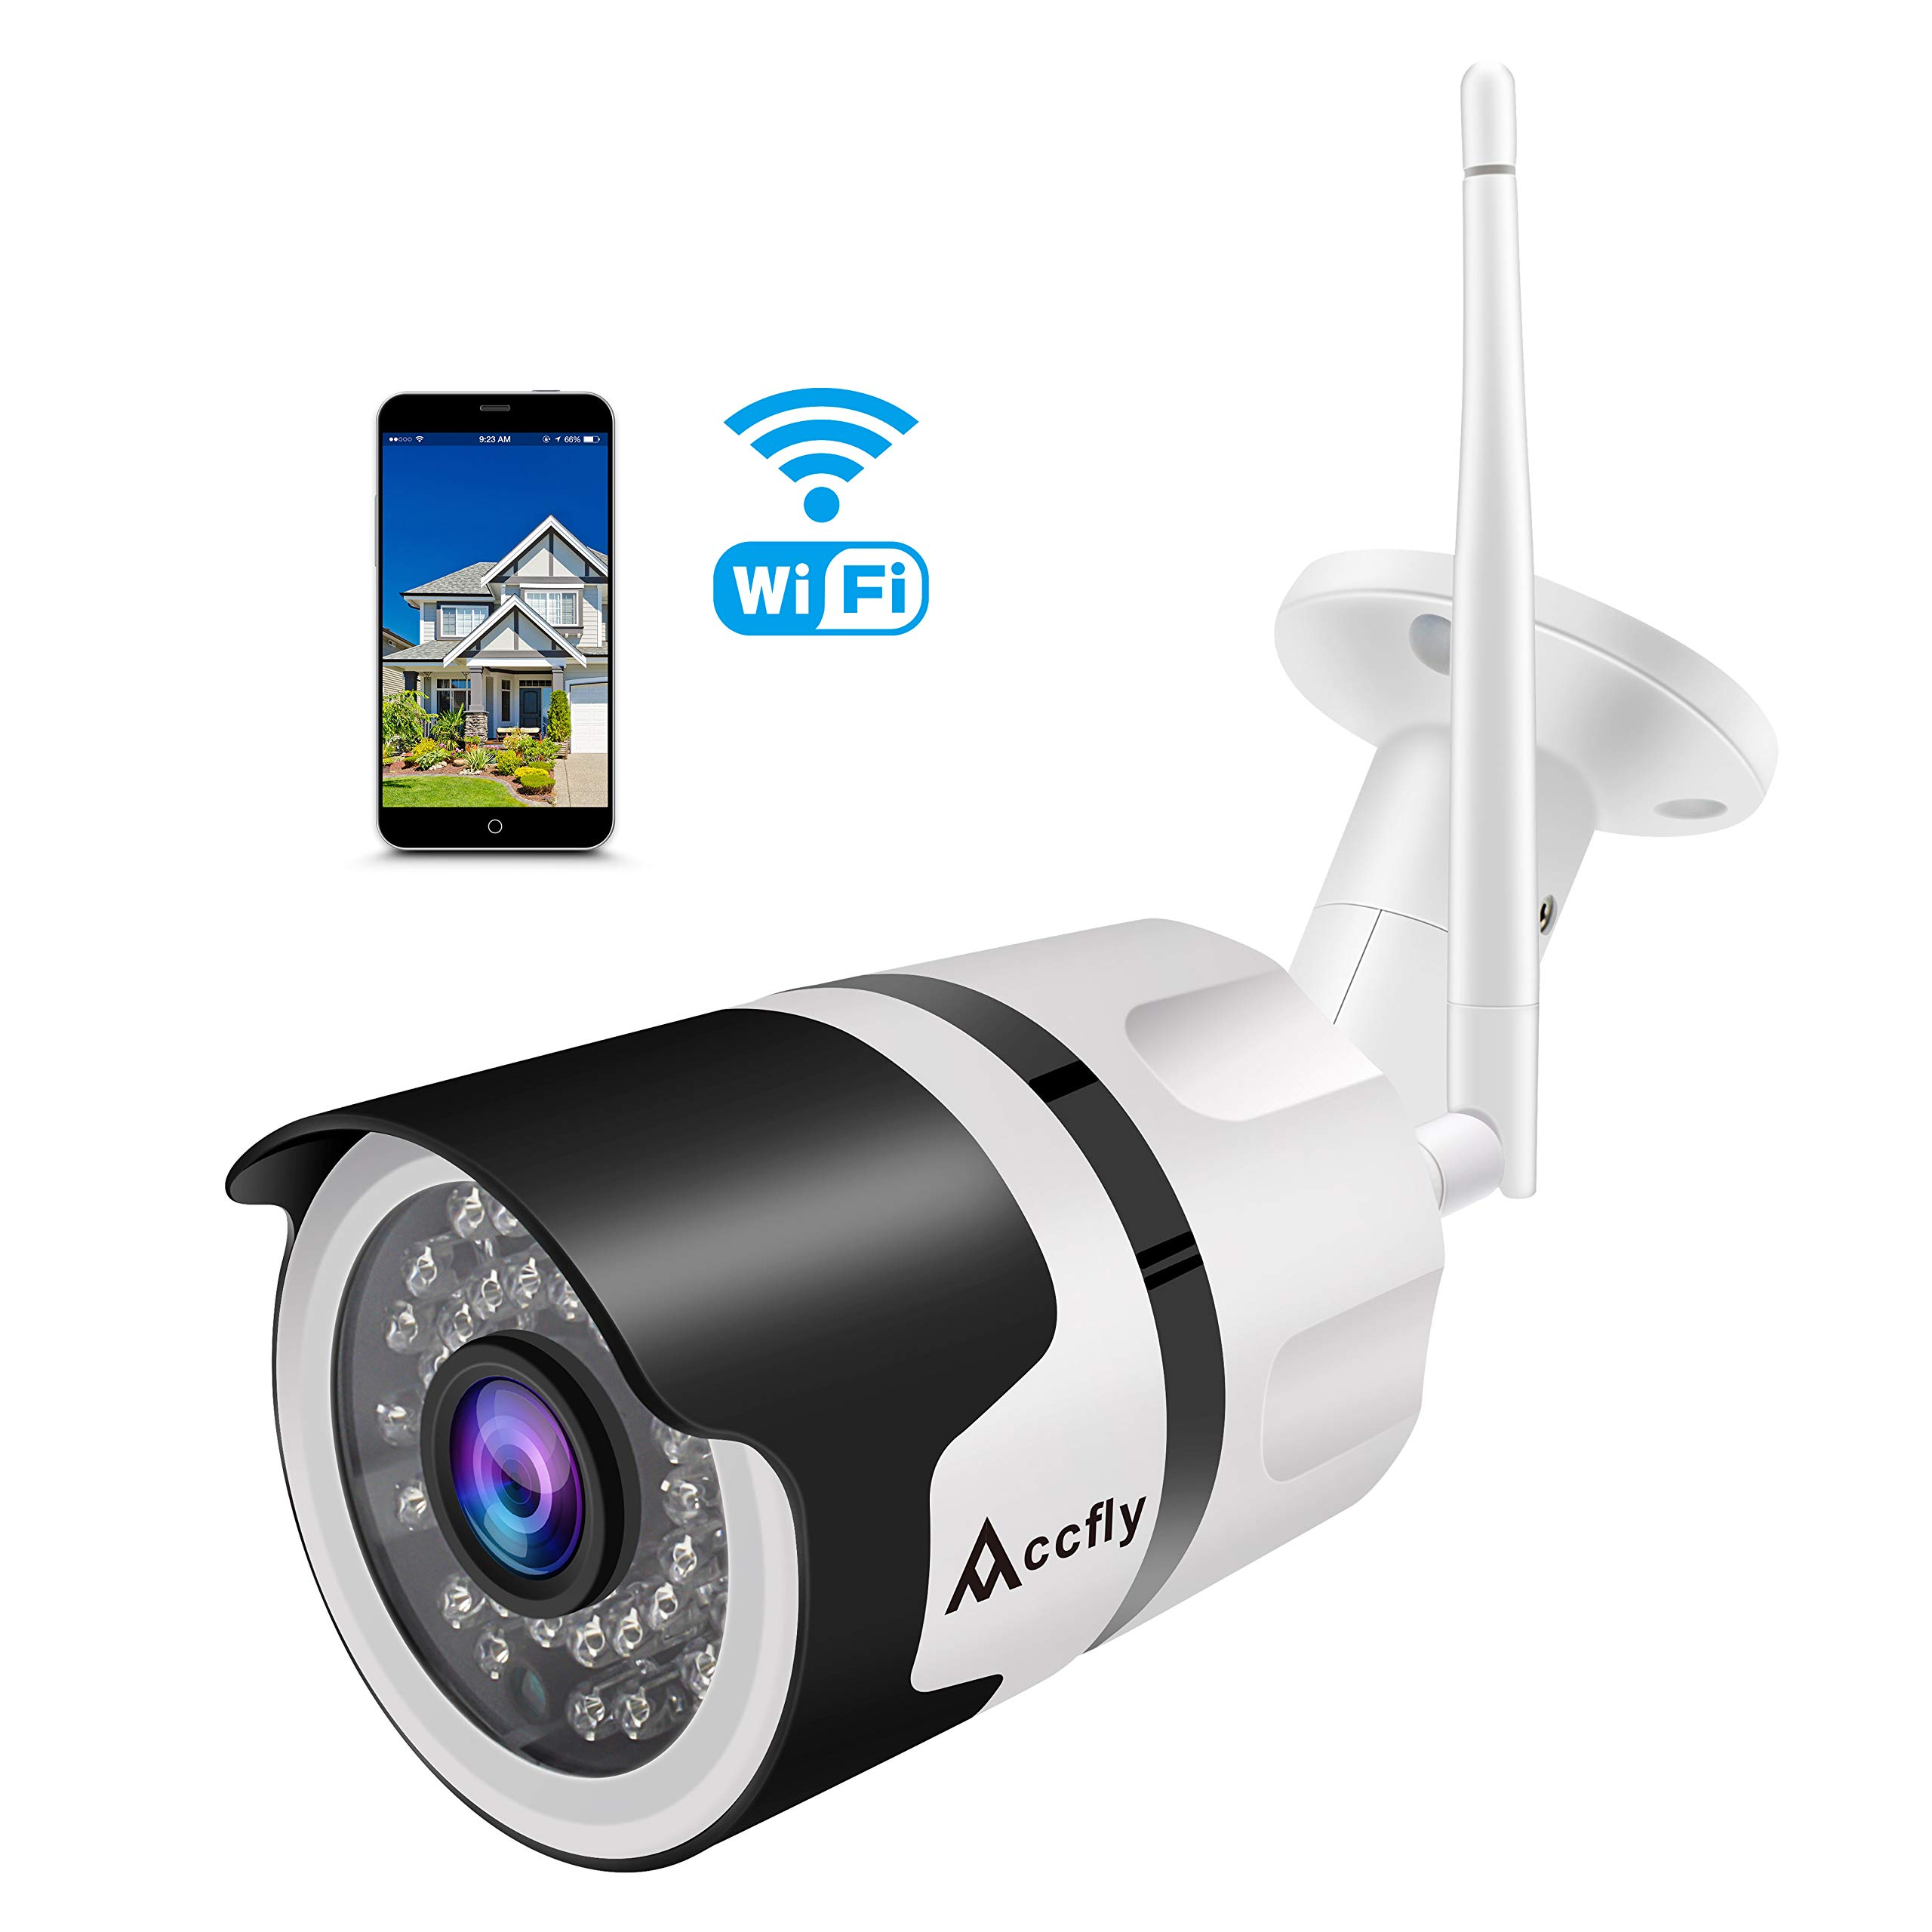 Outdoor Security Camera 1080P HD Wireless WiFi IP Cameras, Home Security Surveillance System Waterproof IR Night Vision Accfly